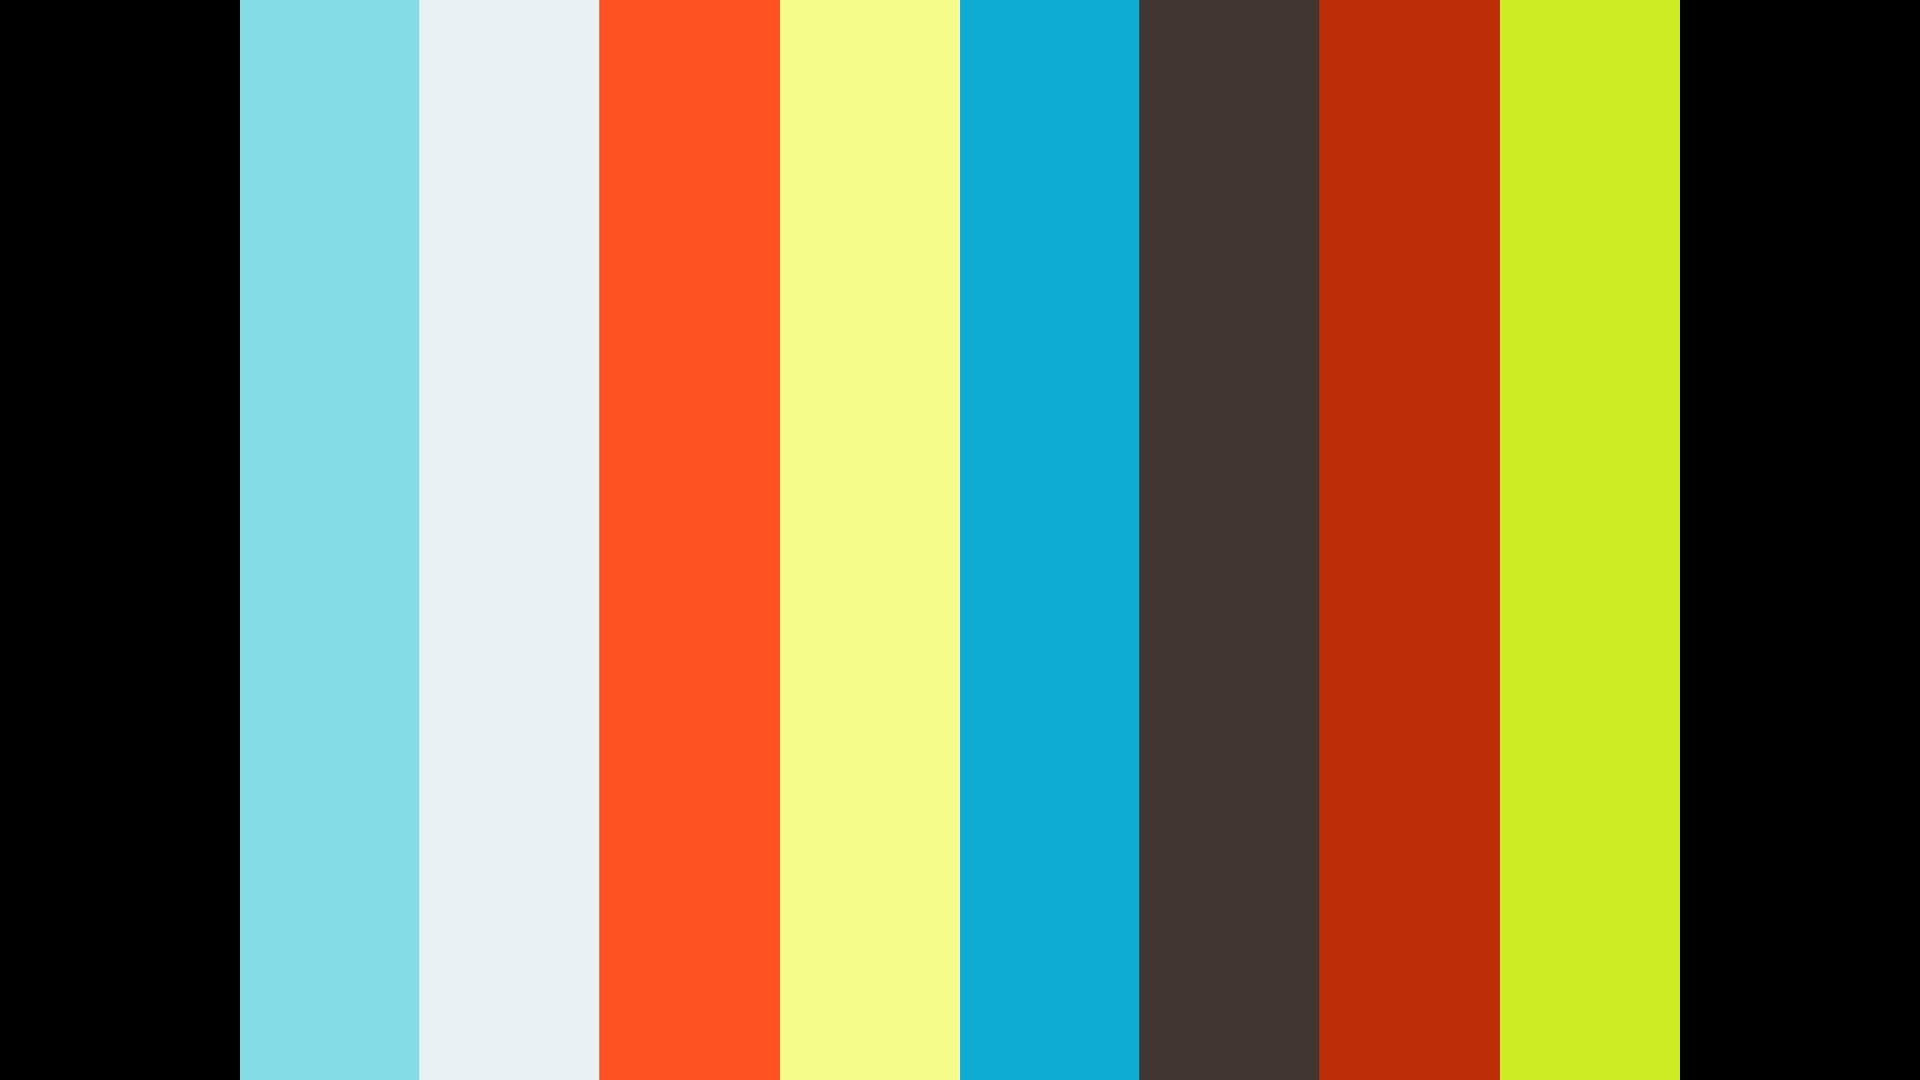 Trauma, psychosis and dissociation – understanding the experiences of survivors of severe trauma presenting for care